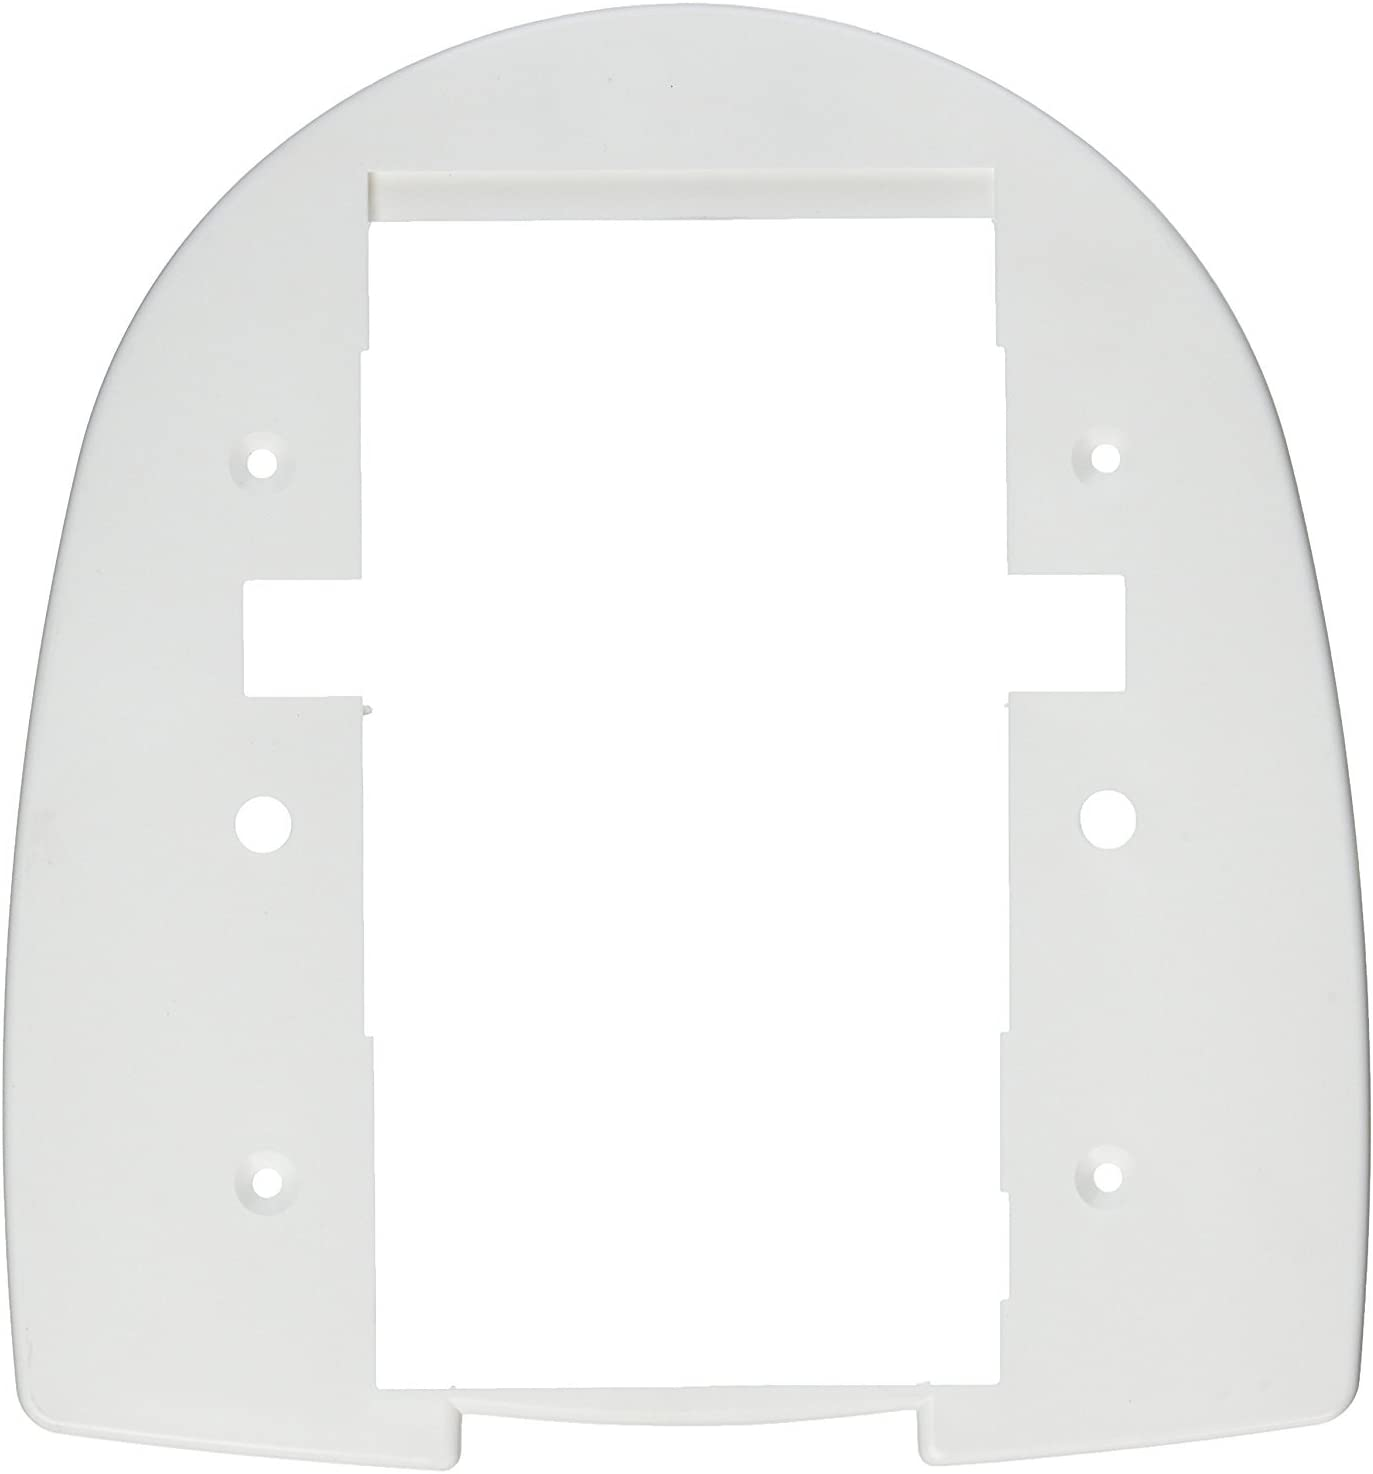 Hayward AXV429WHP White Bumper Assembly Replacement for Hayward Pool Vac Ultra Pool Cleaner